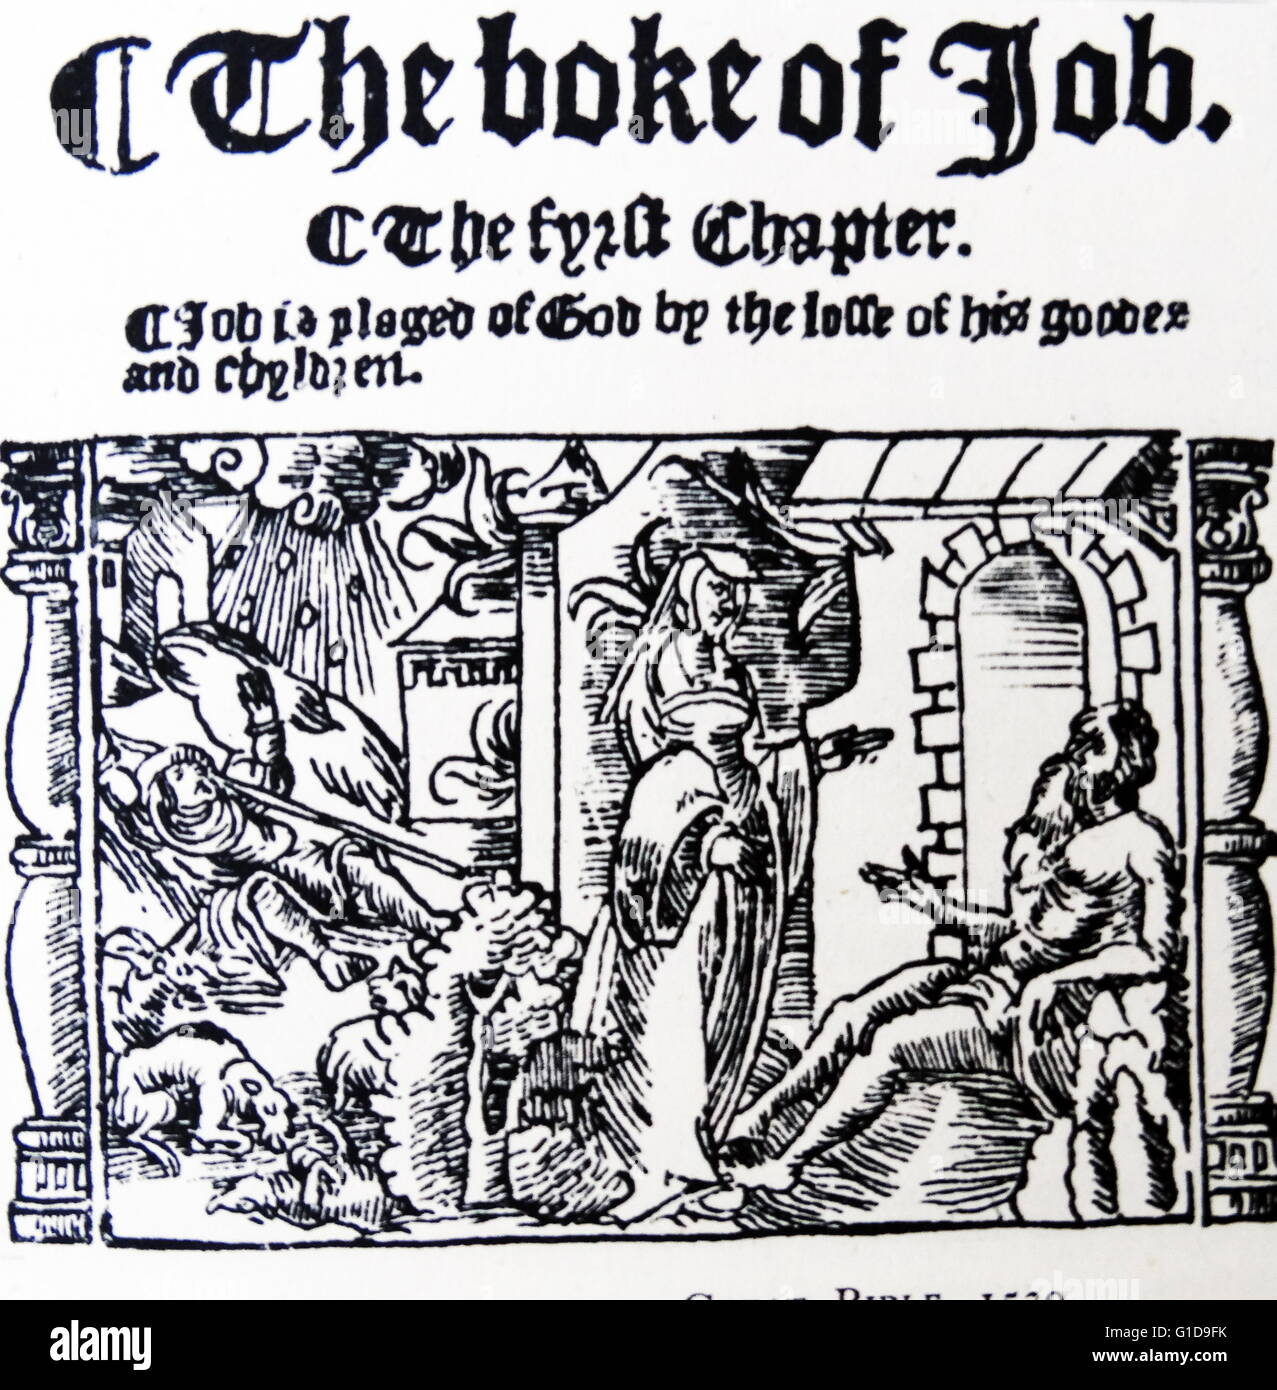 Woodcut from the great bible of 1539, which was the first authorised  English edition published by permission of King Henry VIII